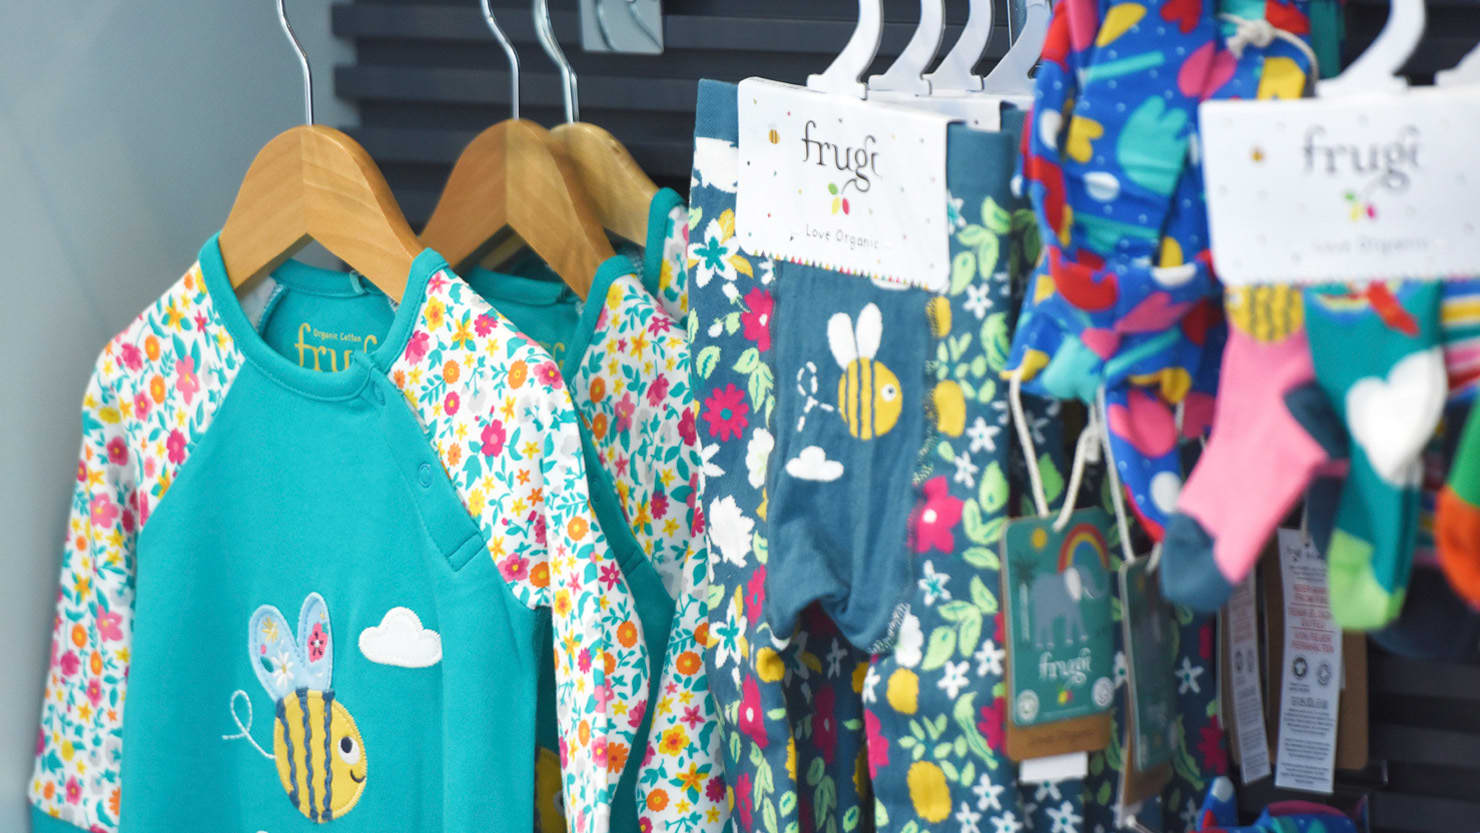 Frugi products on display in the shop at The Box, Plymouth